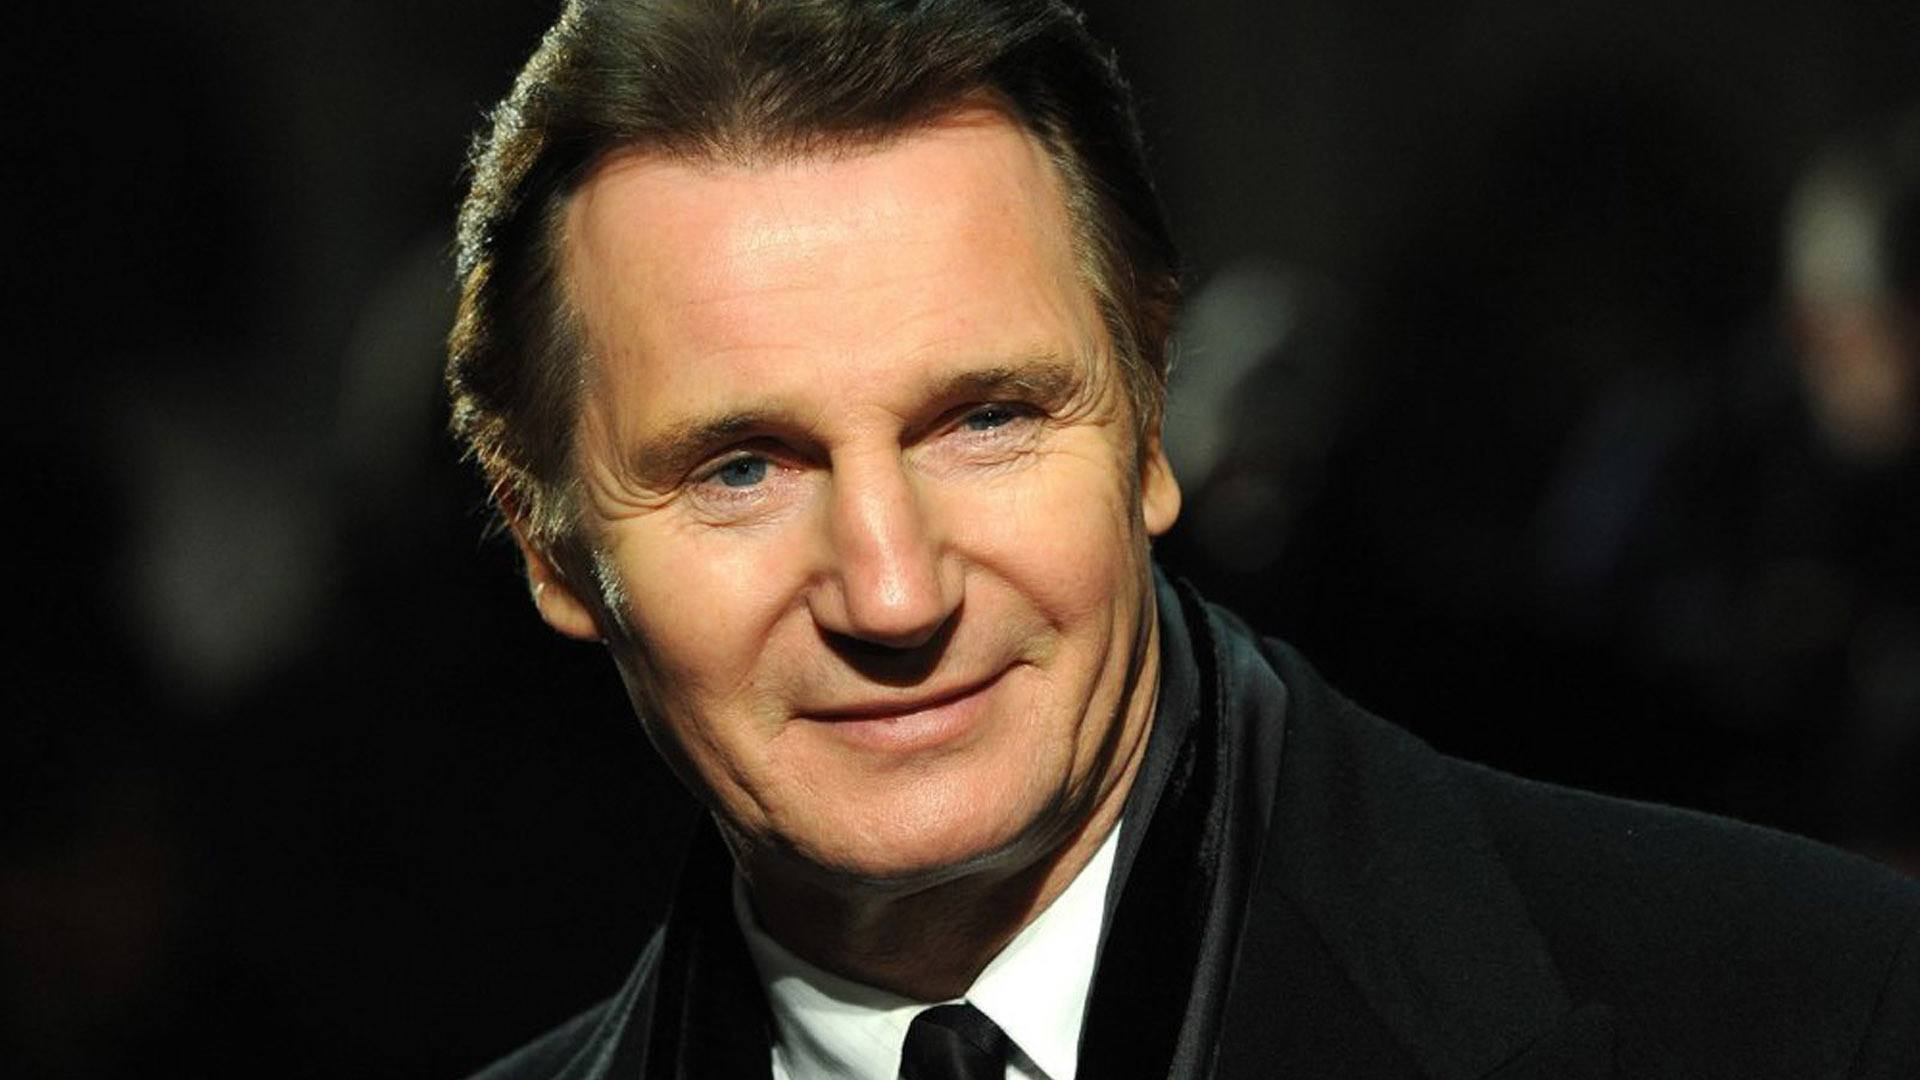 liam_neeson English Muslim Converts-30 Famous People Who Converted To Islam